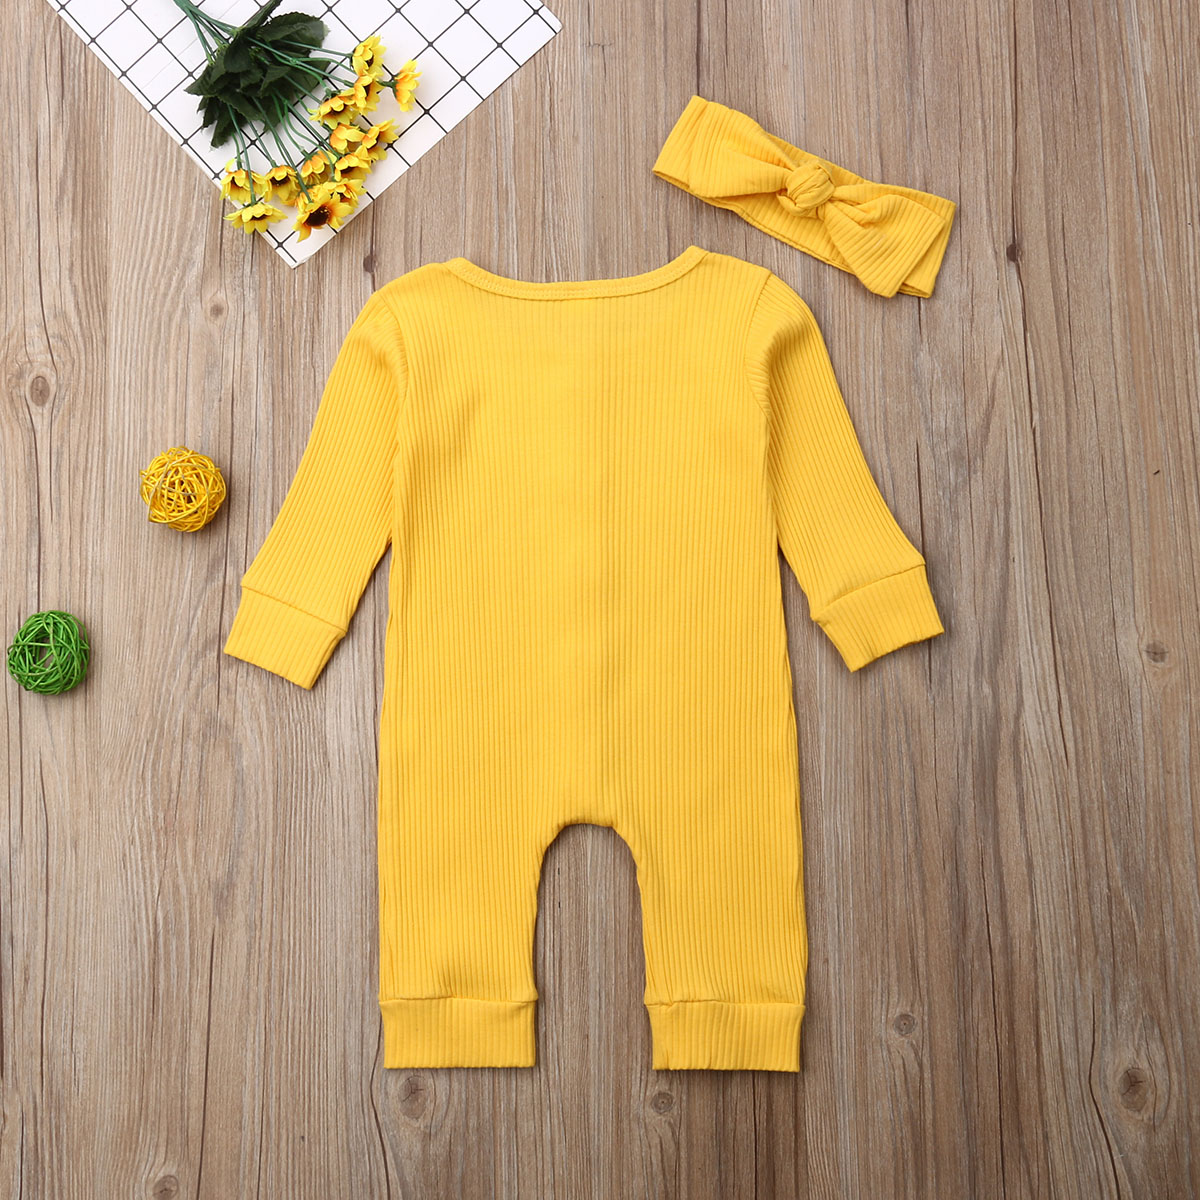 H549bad05d6ea4cb0960e7f2b56e60269i Spring Fall Newborn Baby Girl Boy Clothes Long Sleeve Knitted Romper + Headband Jumpsuit 2PCS Outfit 0-24M